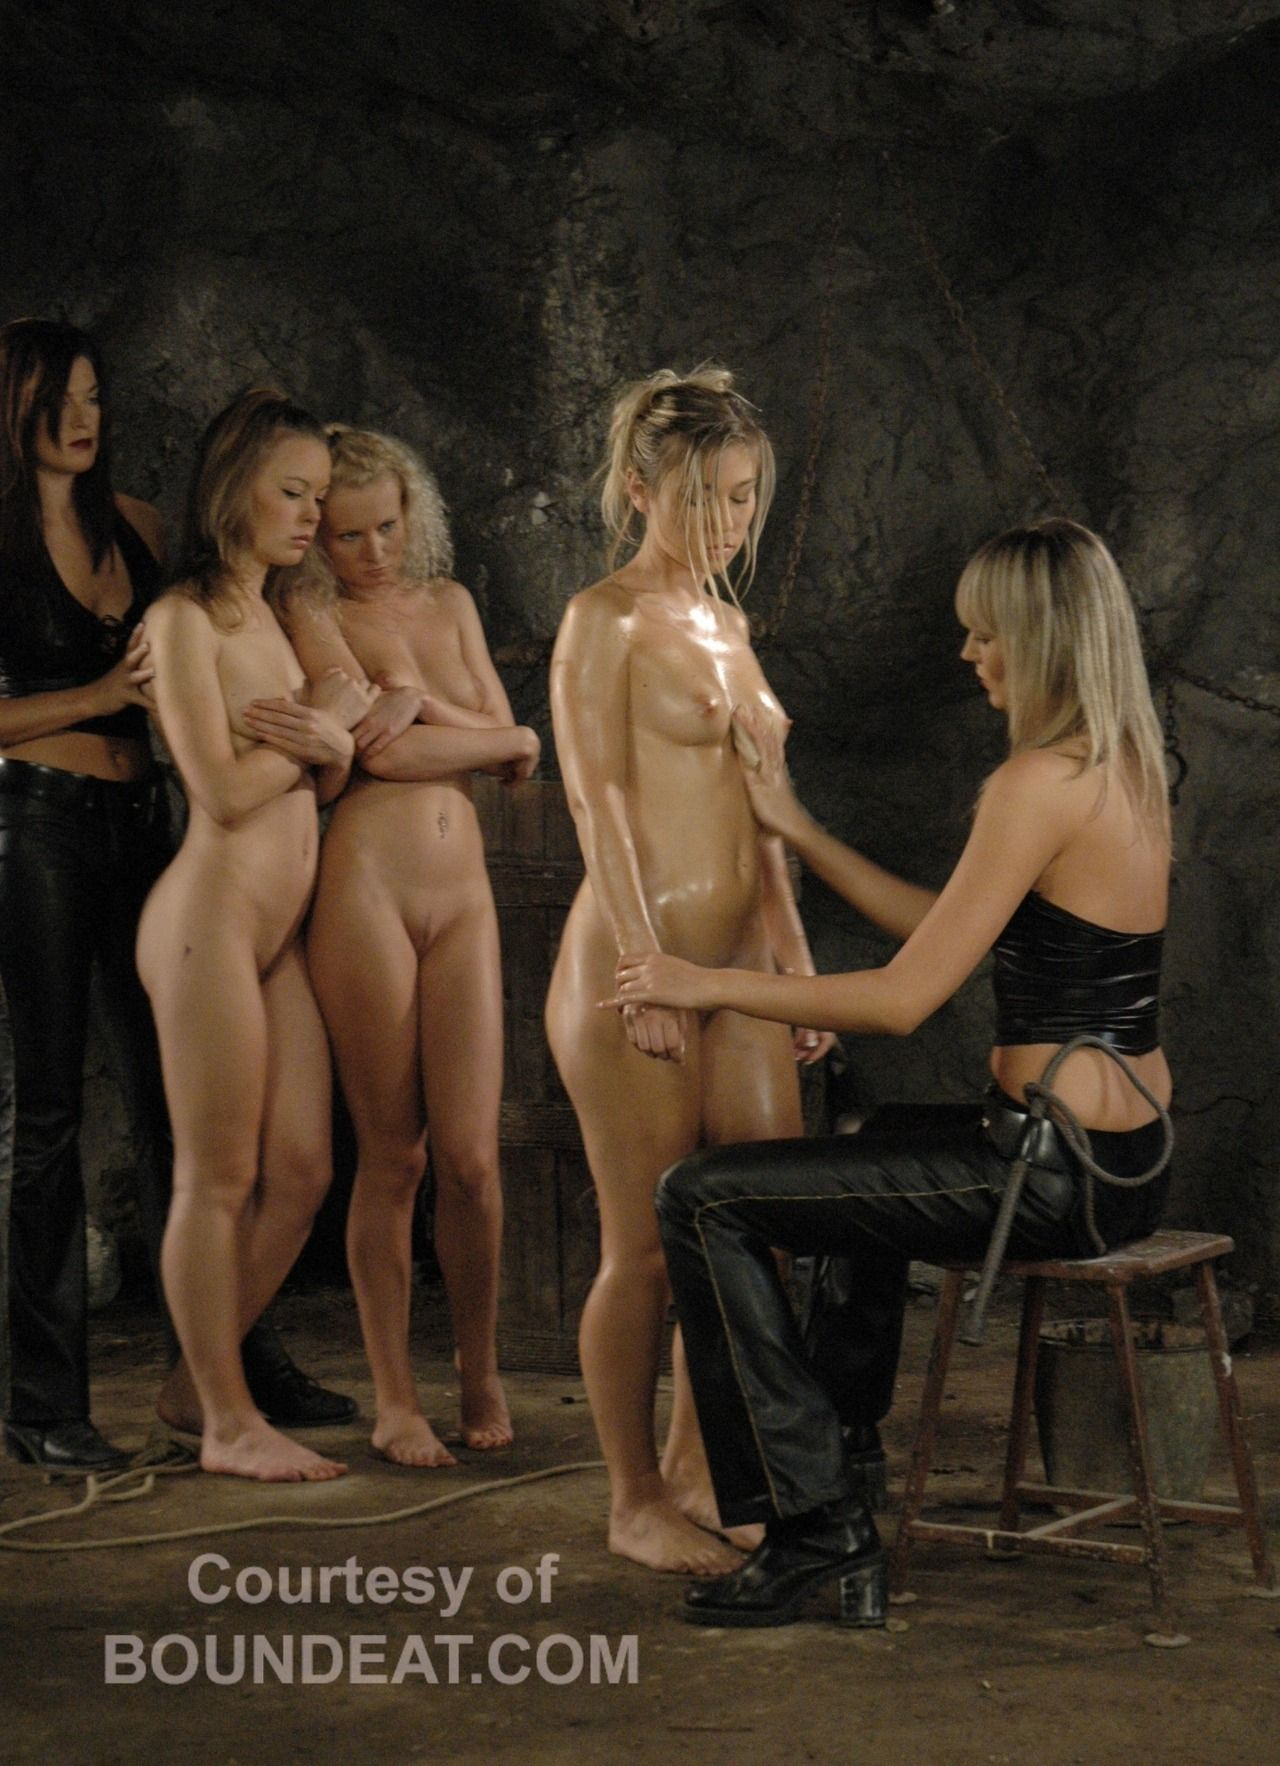 Fantasy slave auction porn pics hentai video